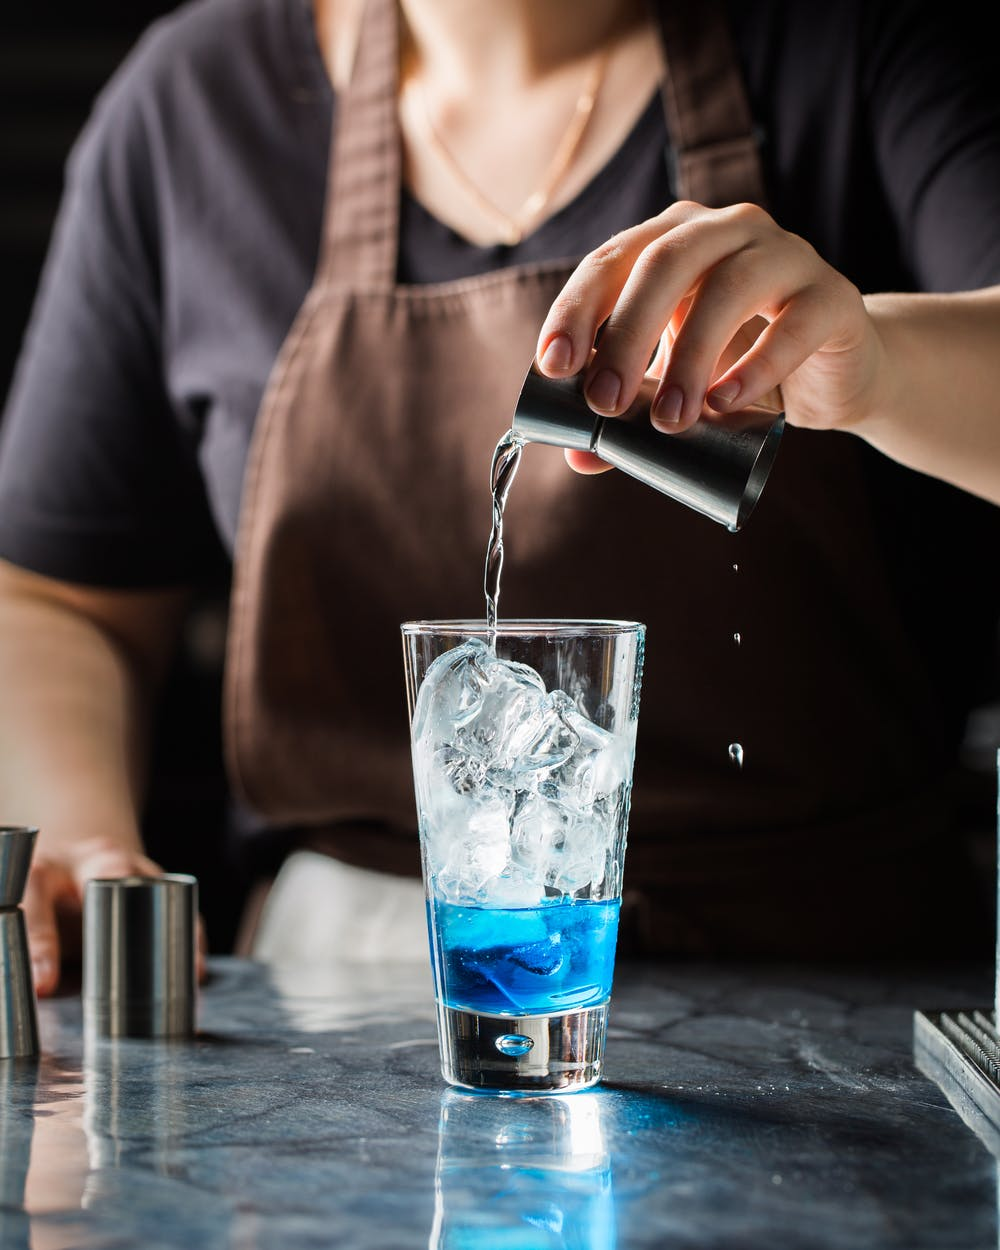 Bartender mixing drinks | Photo: Pexels